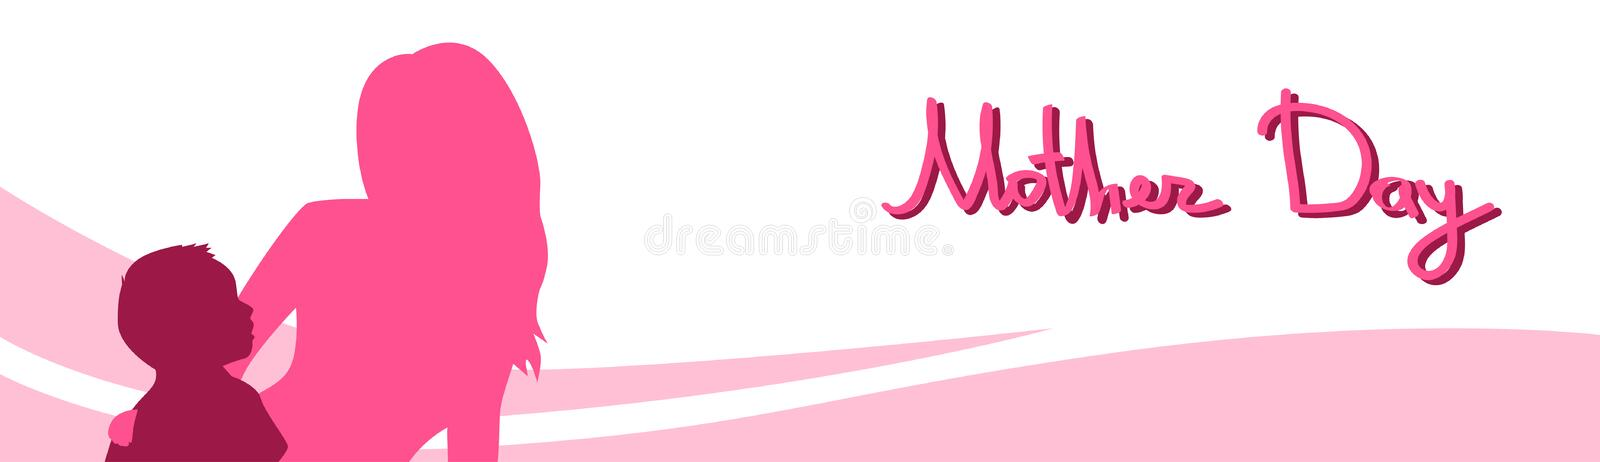 Mother Day, Silhouette Woman Sit Embracing Child, Family Love, Horizontal Banner Abstract Background. Flat Vector Illustration vector illustration